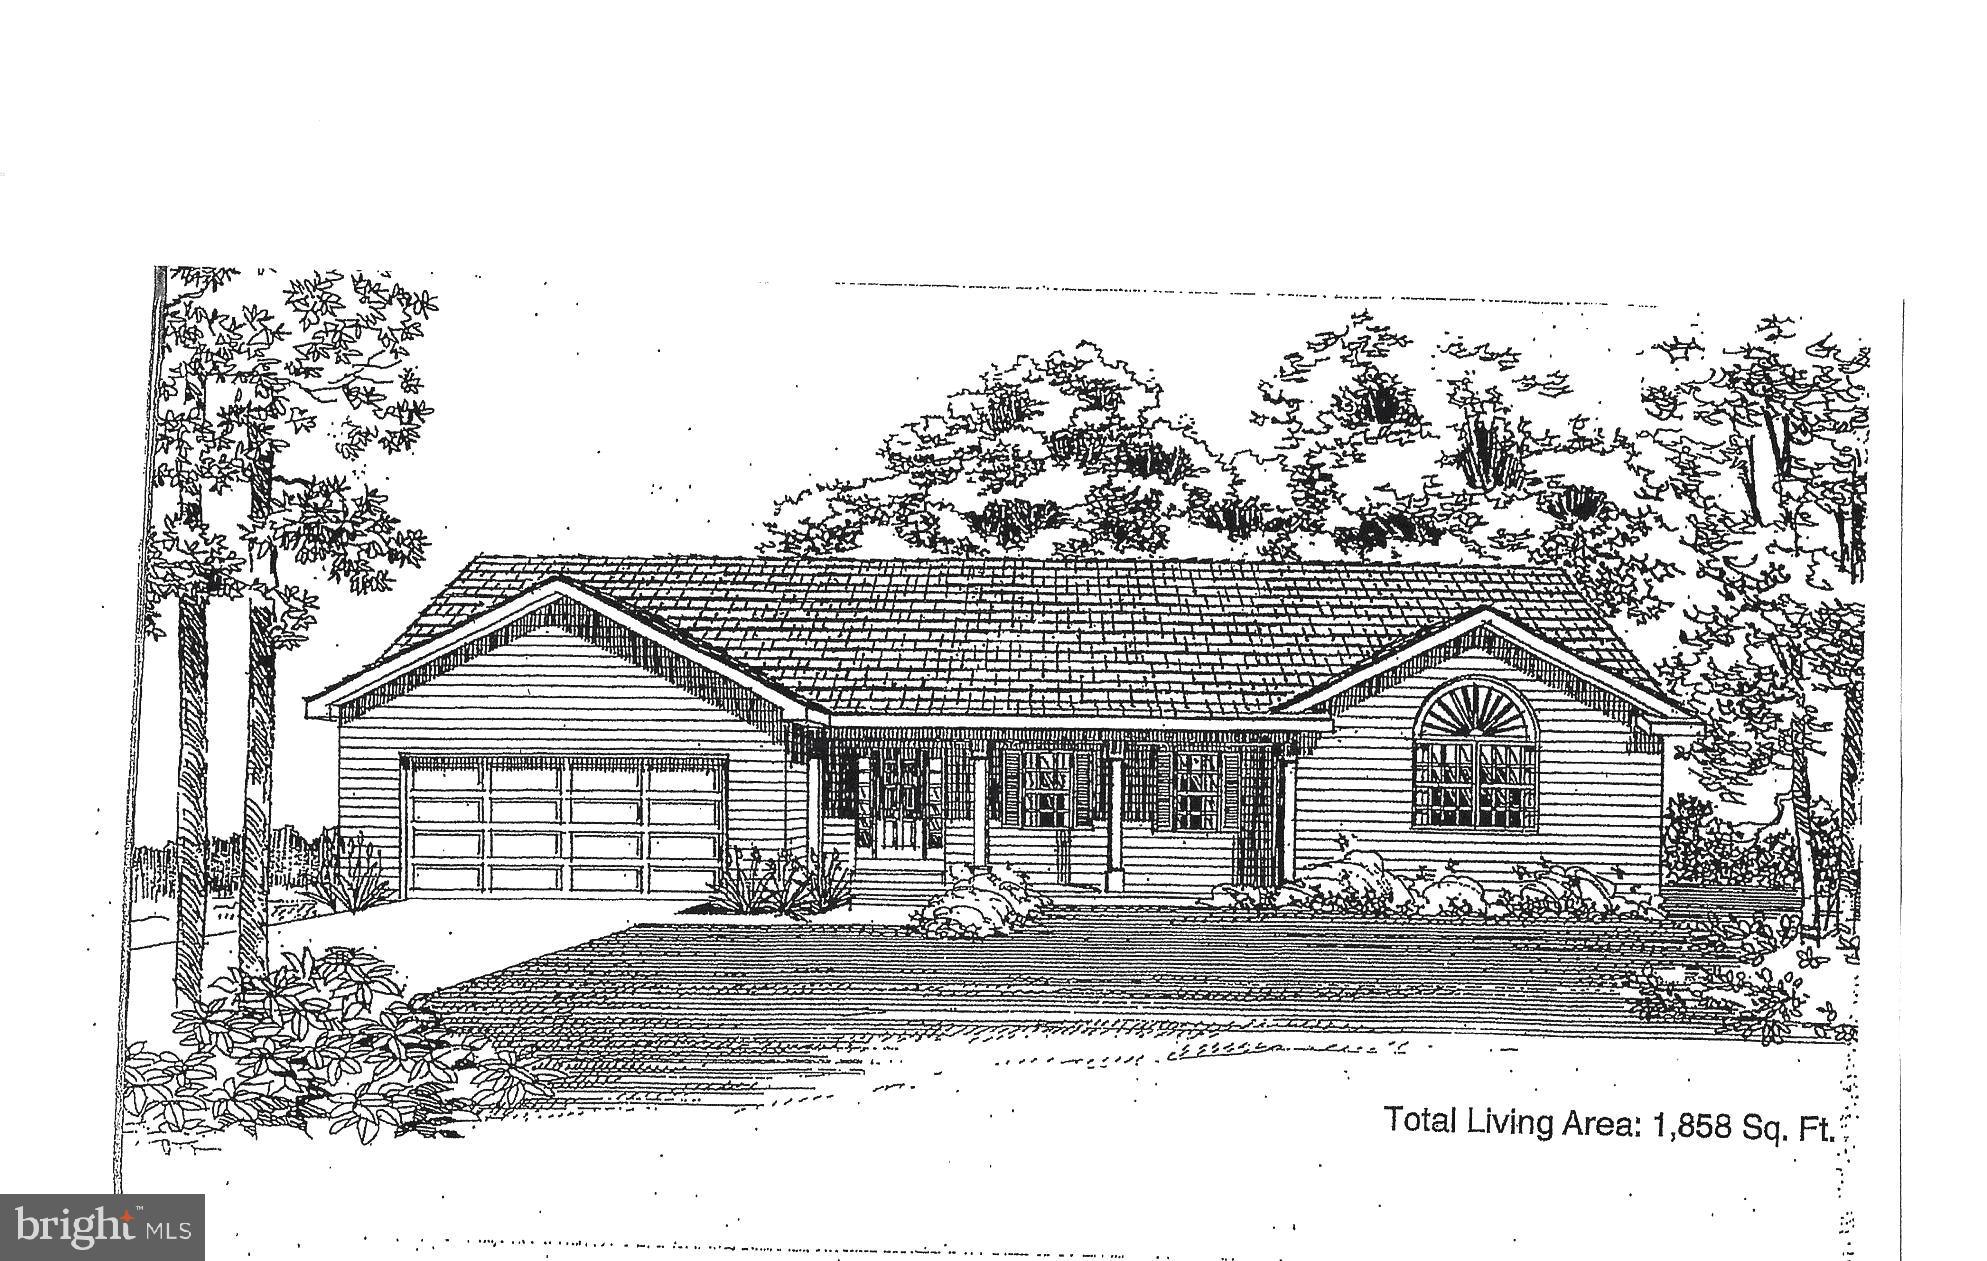 To Be Built!!  BUILDER HAS STARTED HOUSE!!! Still time to customize and make your own selections. RAMBLER split floor plan!  Floor plan is open with Master  bedroom on one side two bedroom on other side of house. House will have many spectacular features. Kitchen with upgraded cabinets, appliances and granite counters. Living room, dining room kitchen and foyer with engineered hardwood floors. Three large bedrooms, two full baths, laundry room. Master bedroom with walk-in closet.  Ceiling fans in all bedrooms and living room. recessed lights in kitchen .  Covered  front porch and 2 car garage. And A Lot More!!